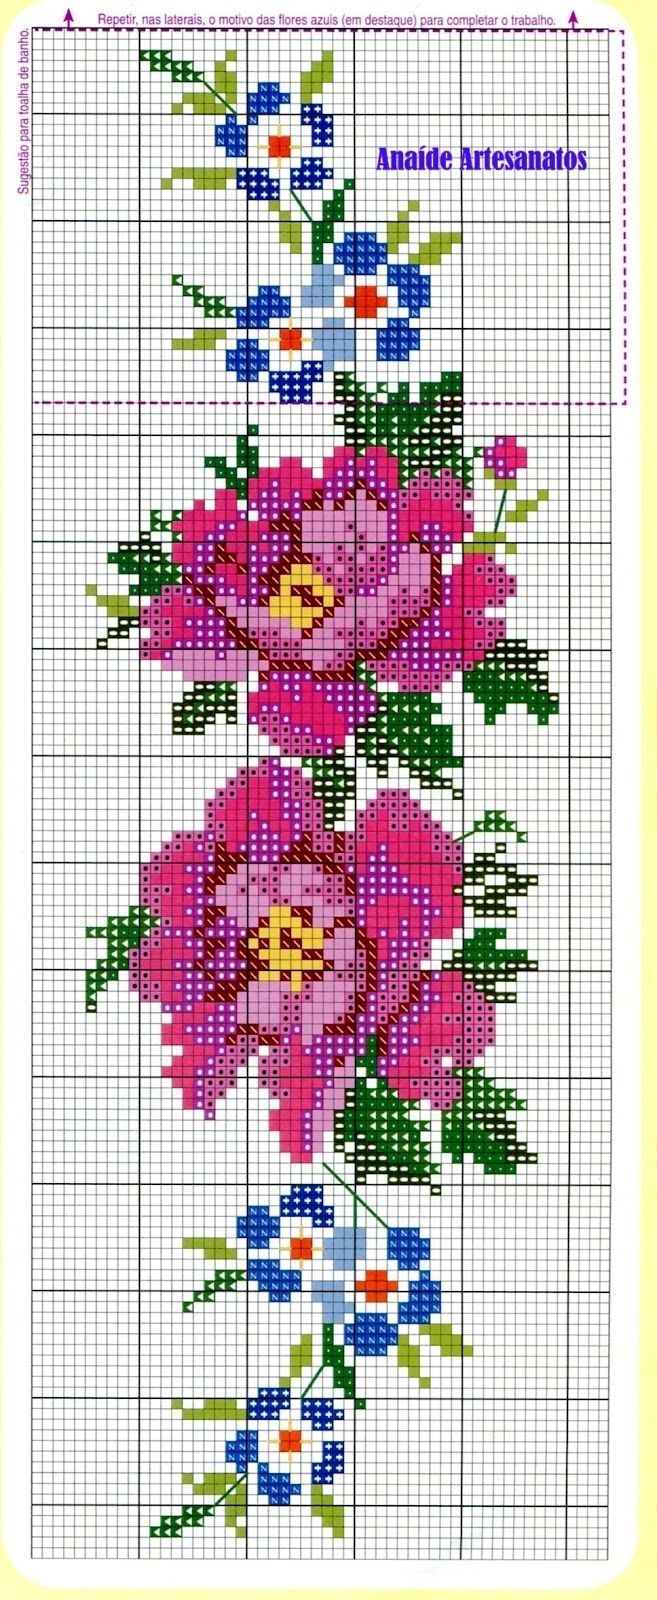 Yogurtcu [] #<br/> # #657 #1600,<br/> # #Ulku,<br/> # #818,<br/> # #Cross #Stitch,<br/> # #1 #600,<br/> # #Flowers<br/>